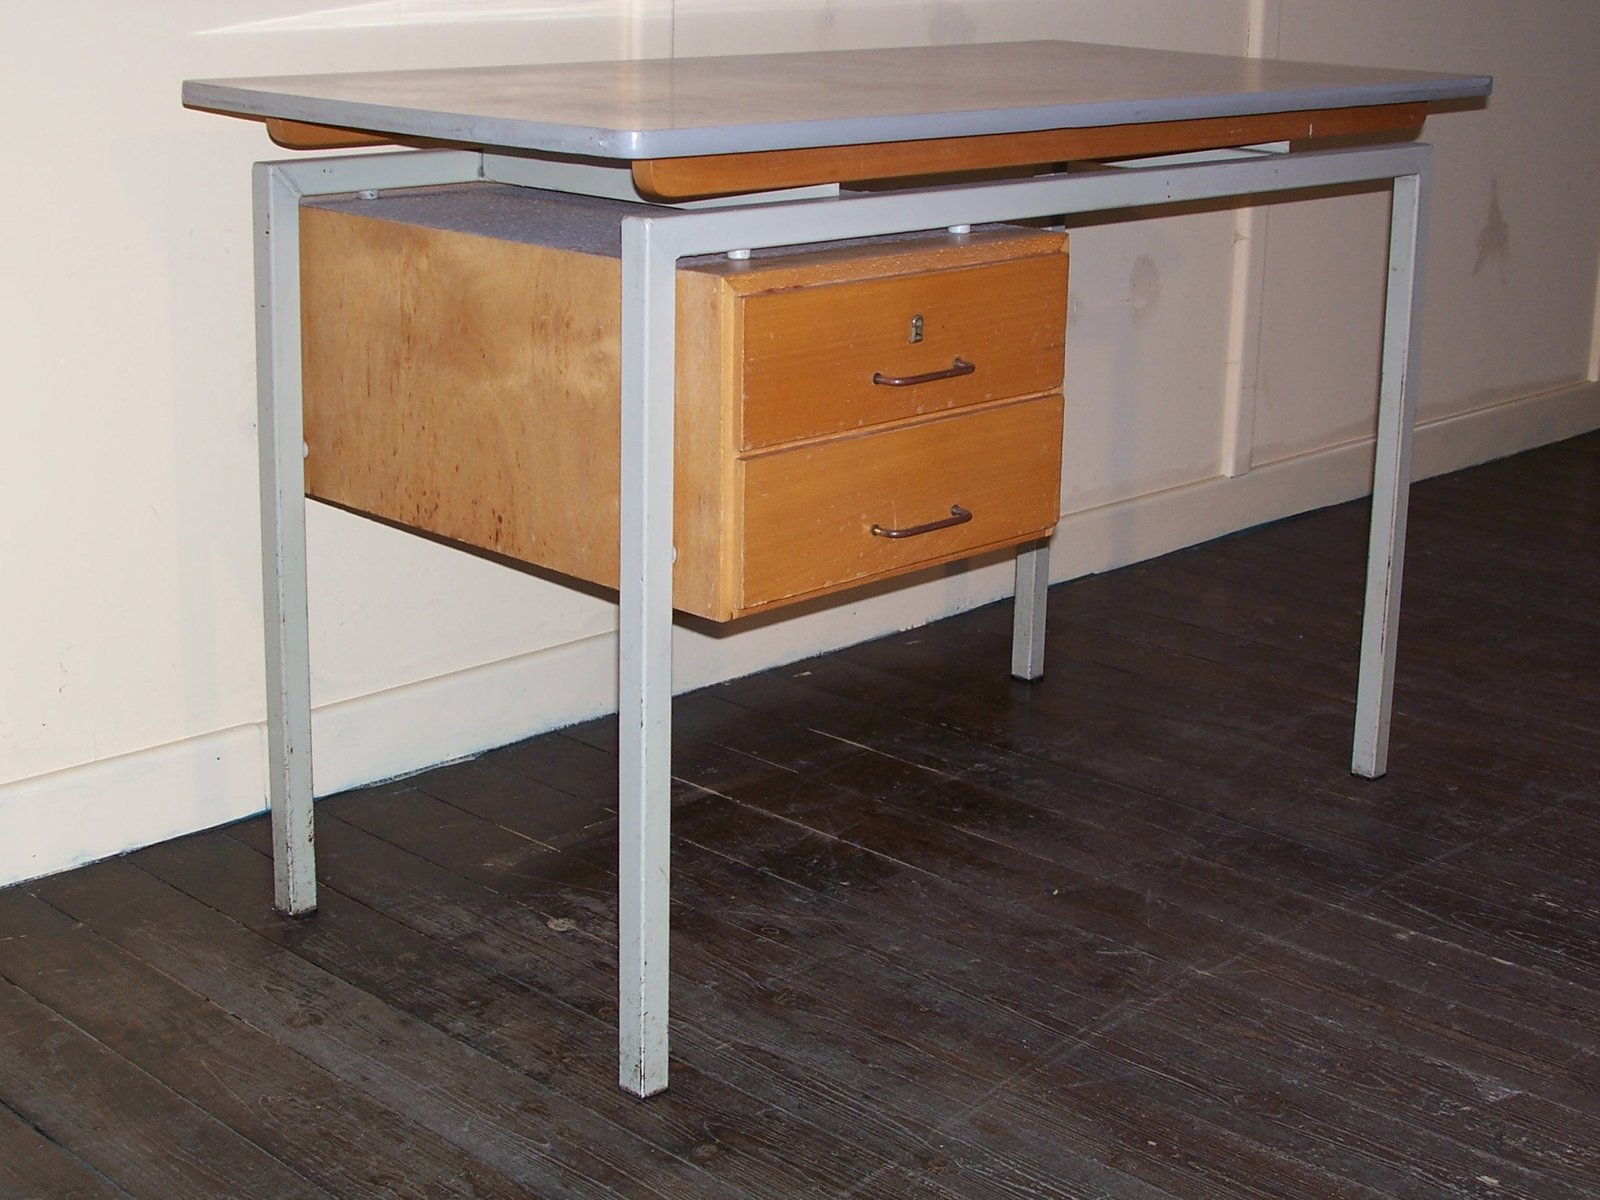 Vintage Desk with Formica Top and Wooden Drawers for sale at Pamono